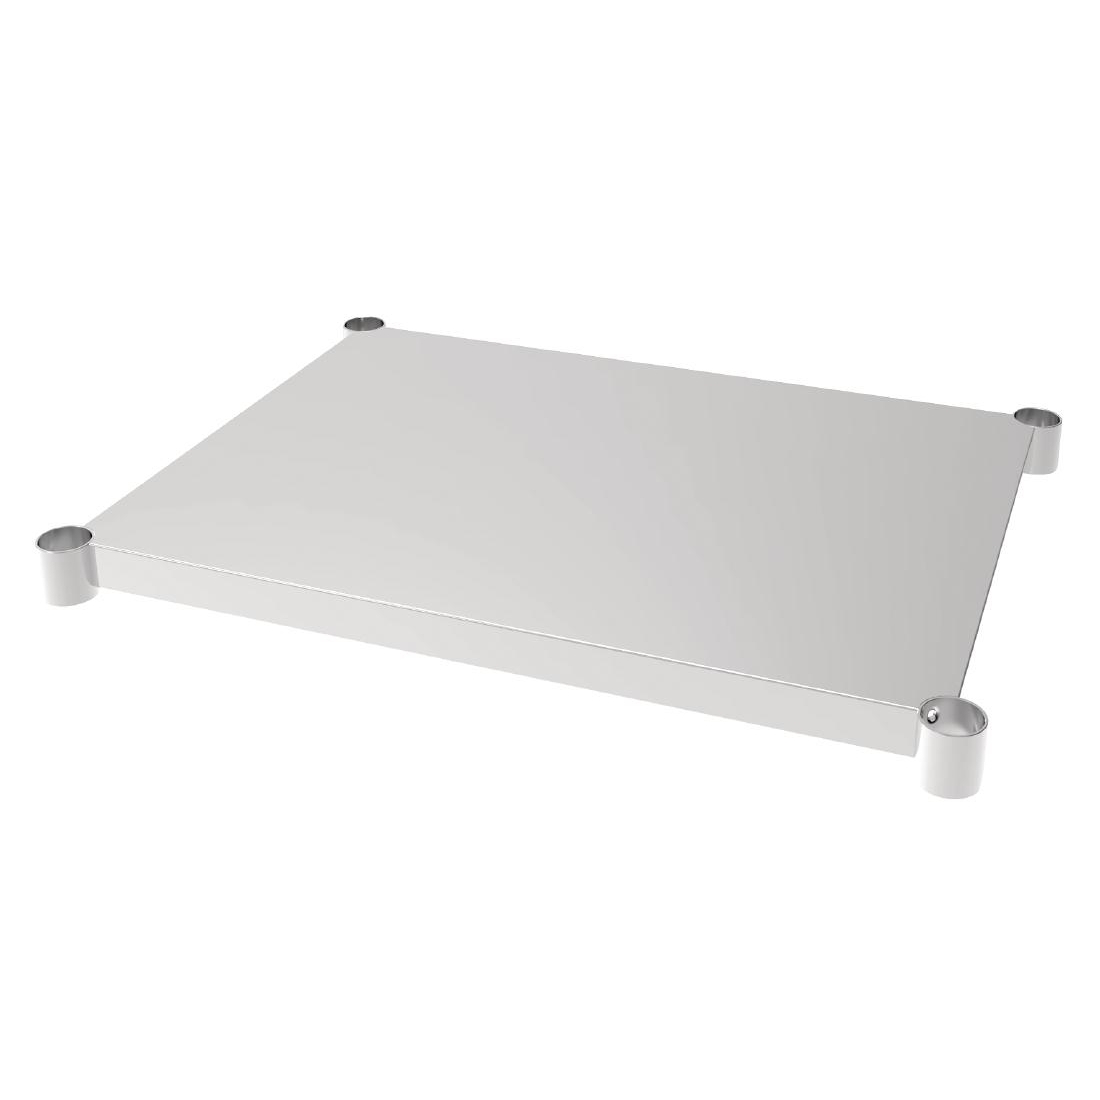 Vogue Stainless Steel Table Shelf 700x900mm